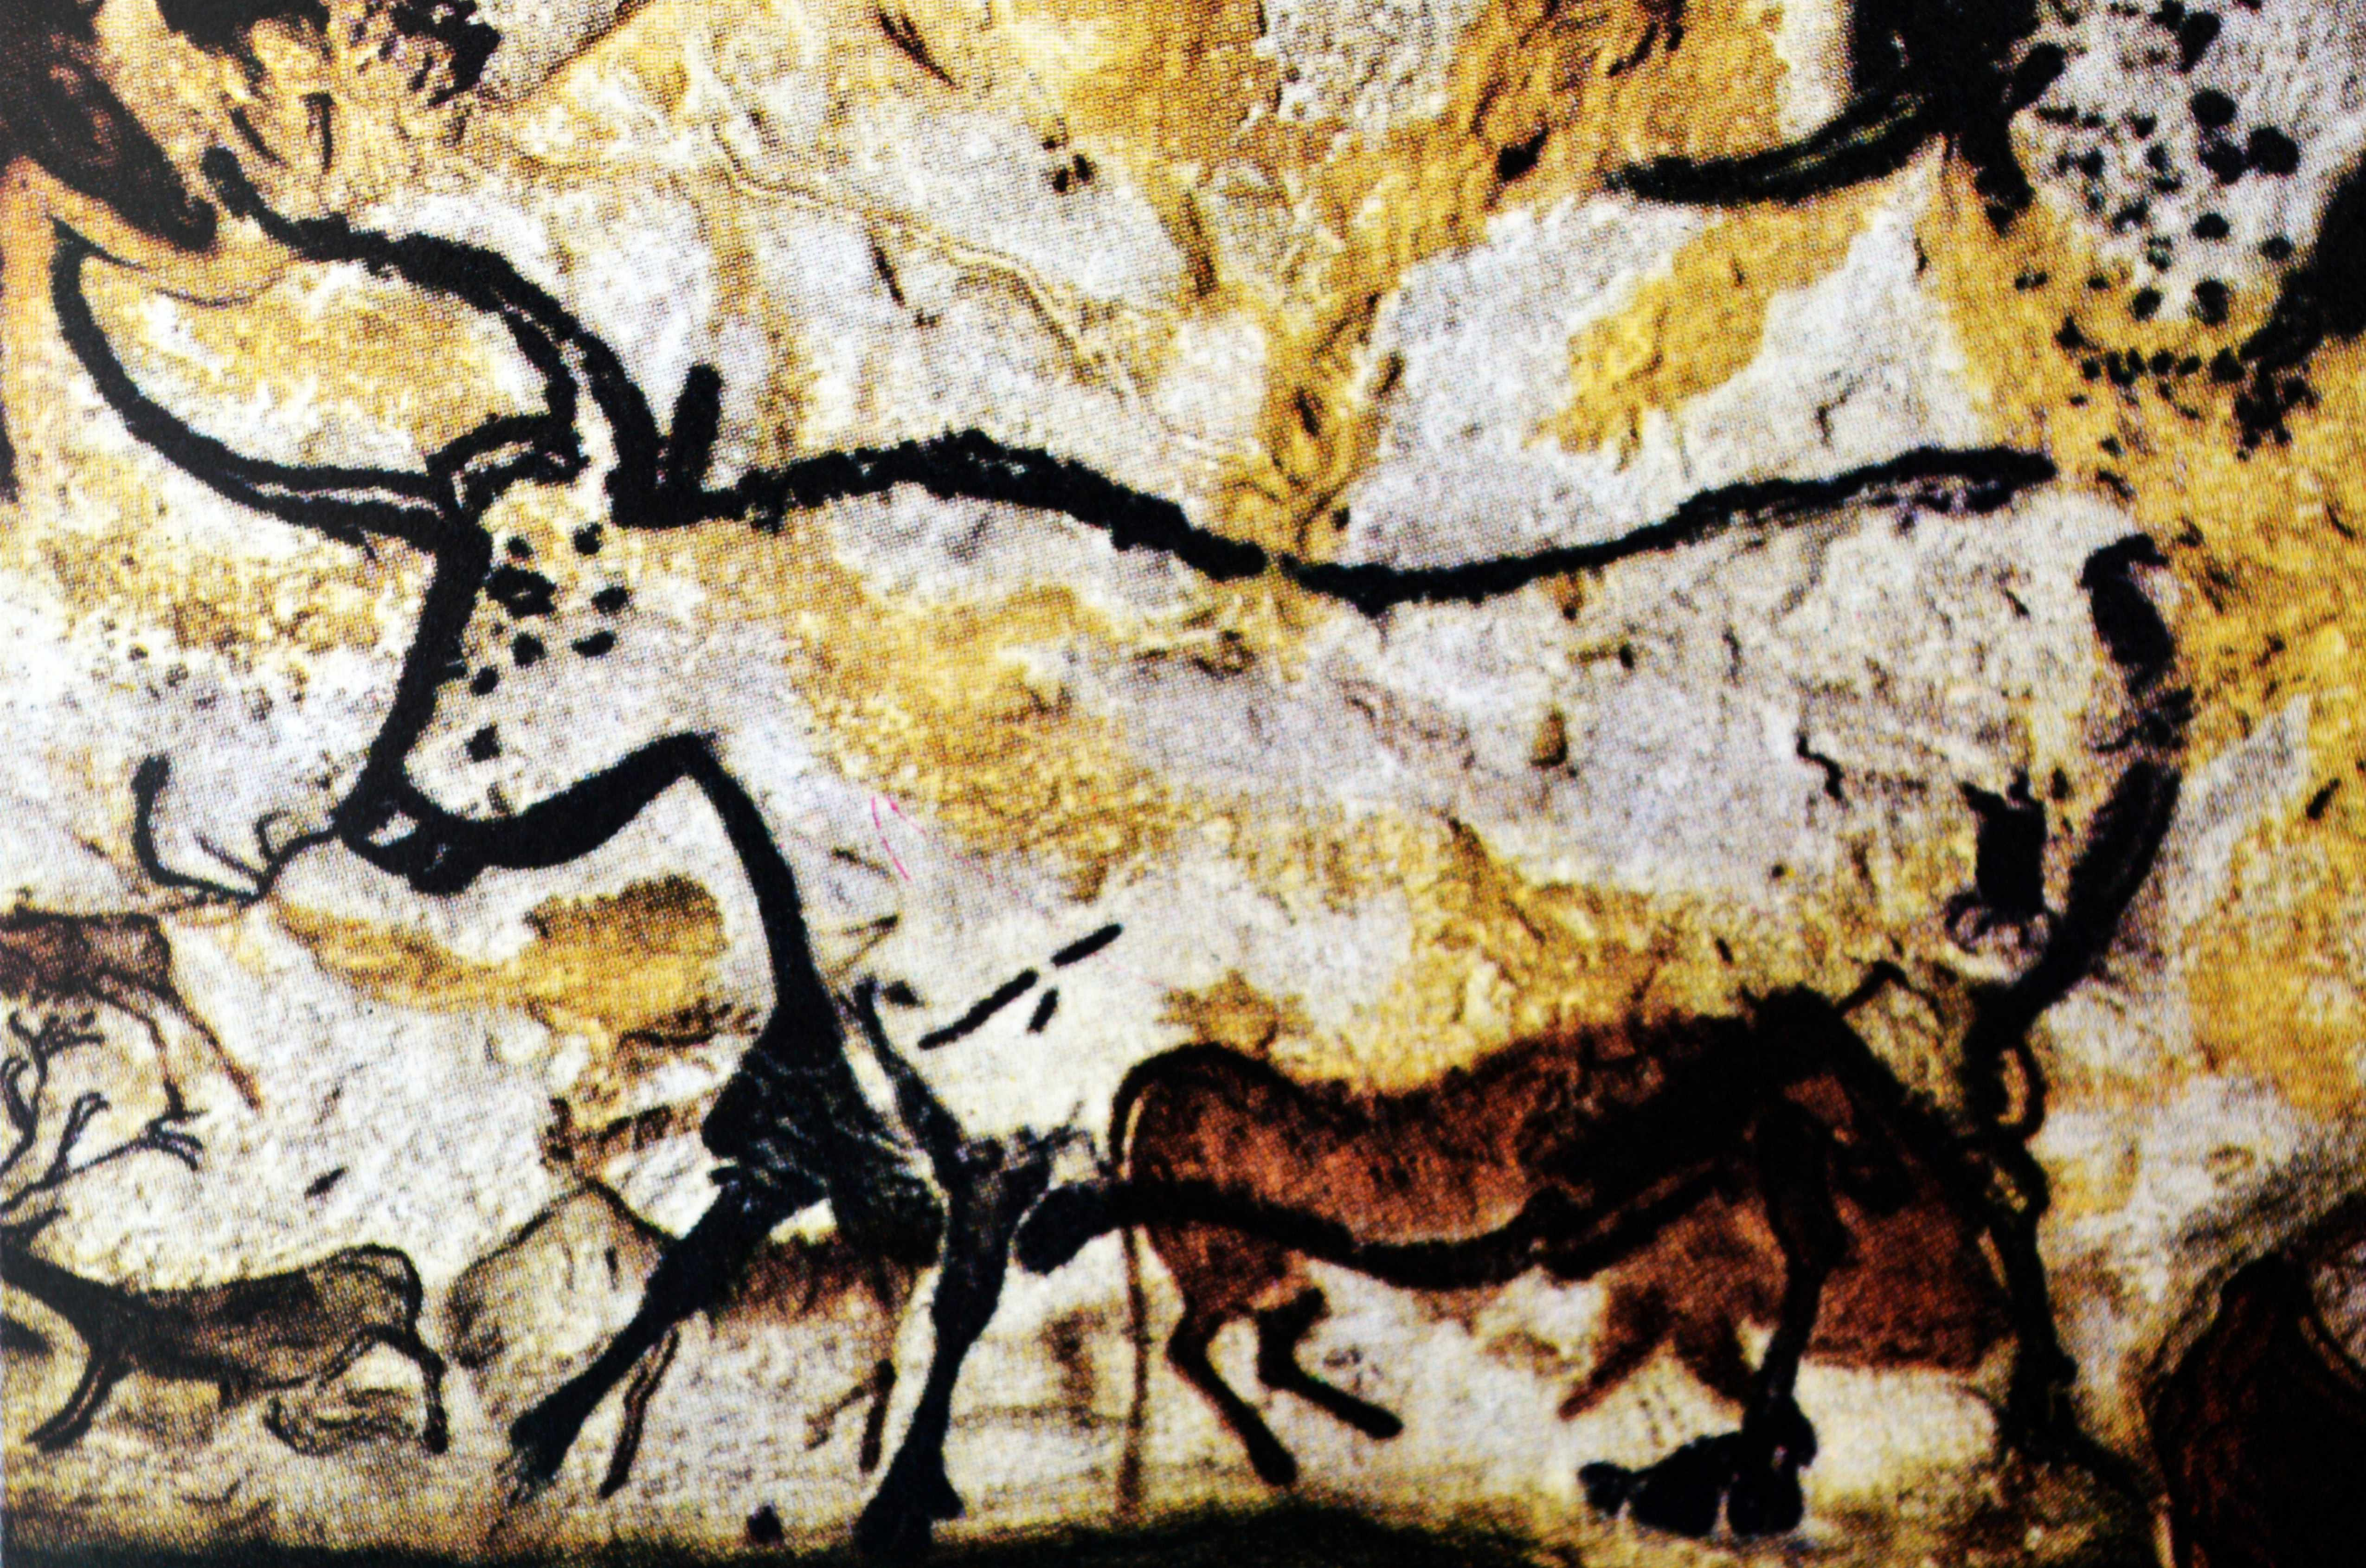 Detail of a cave painting at Lascaux, France. © Getty